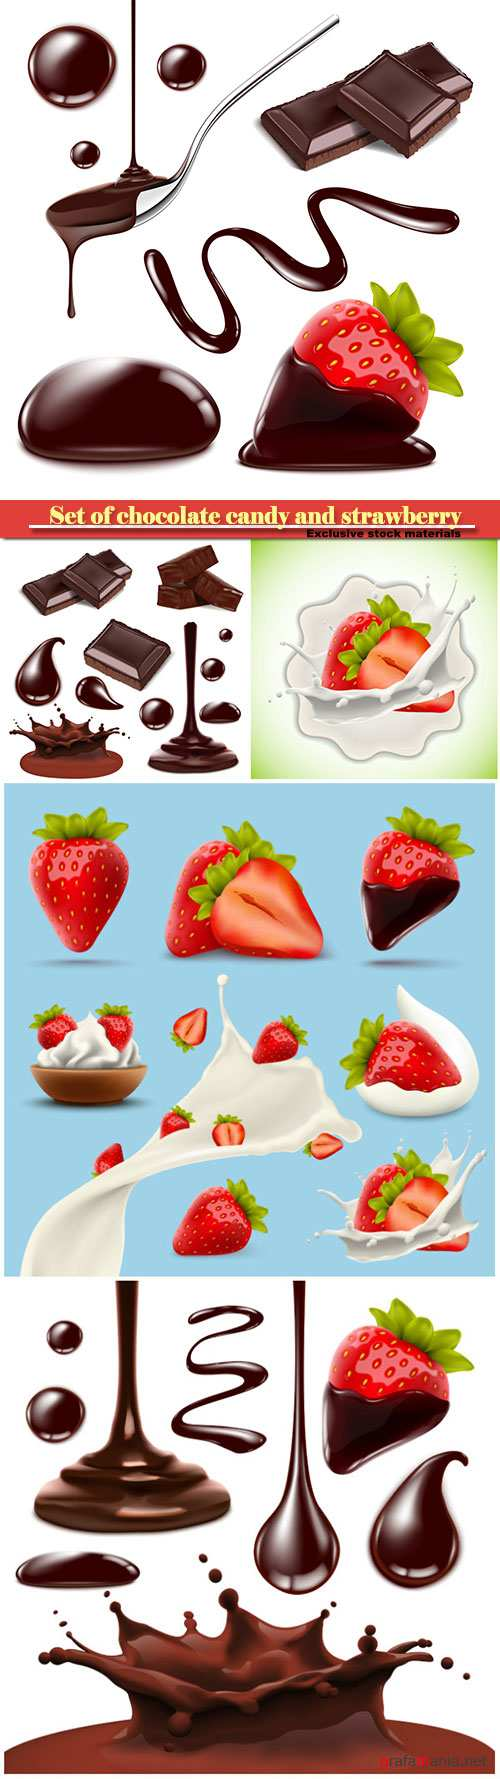 Set of chocolate candy and strawberry in vector